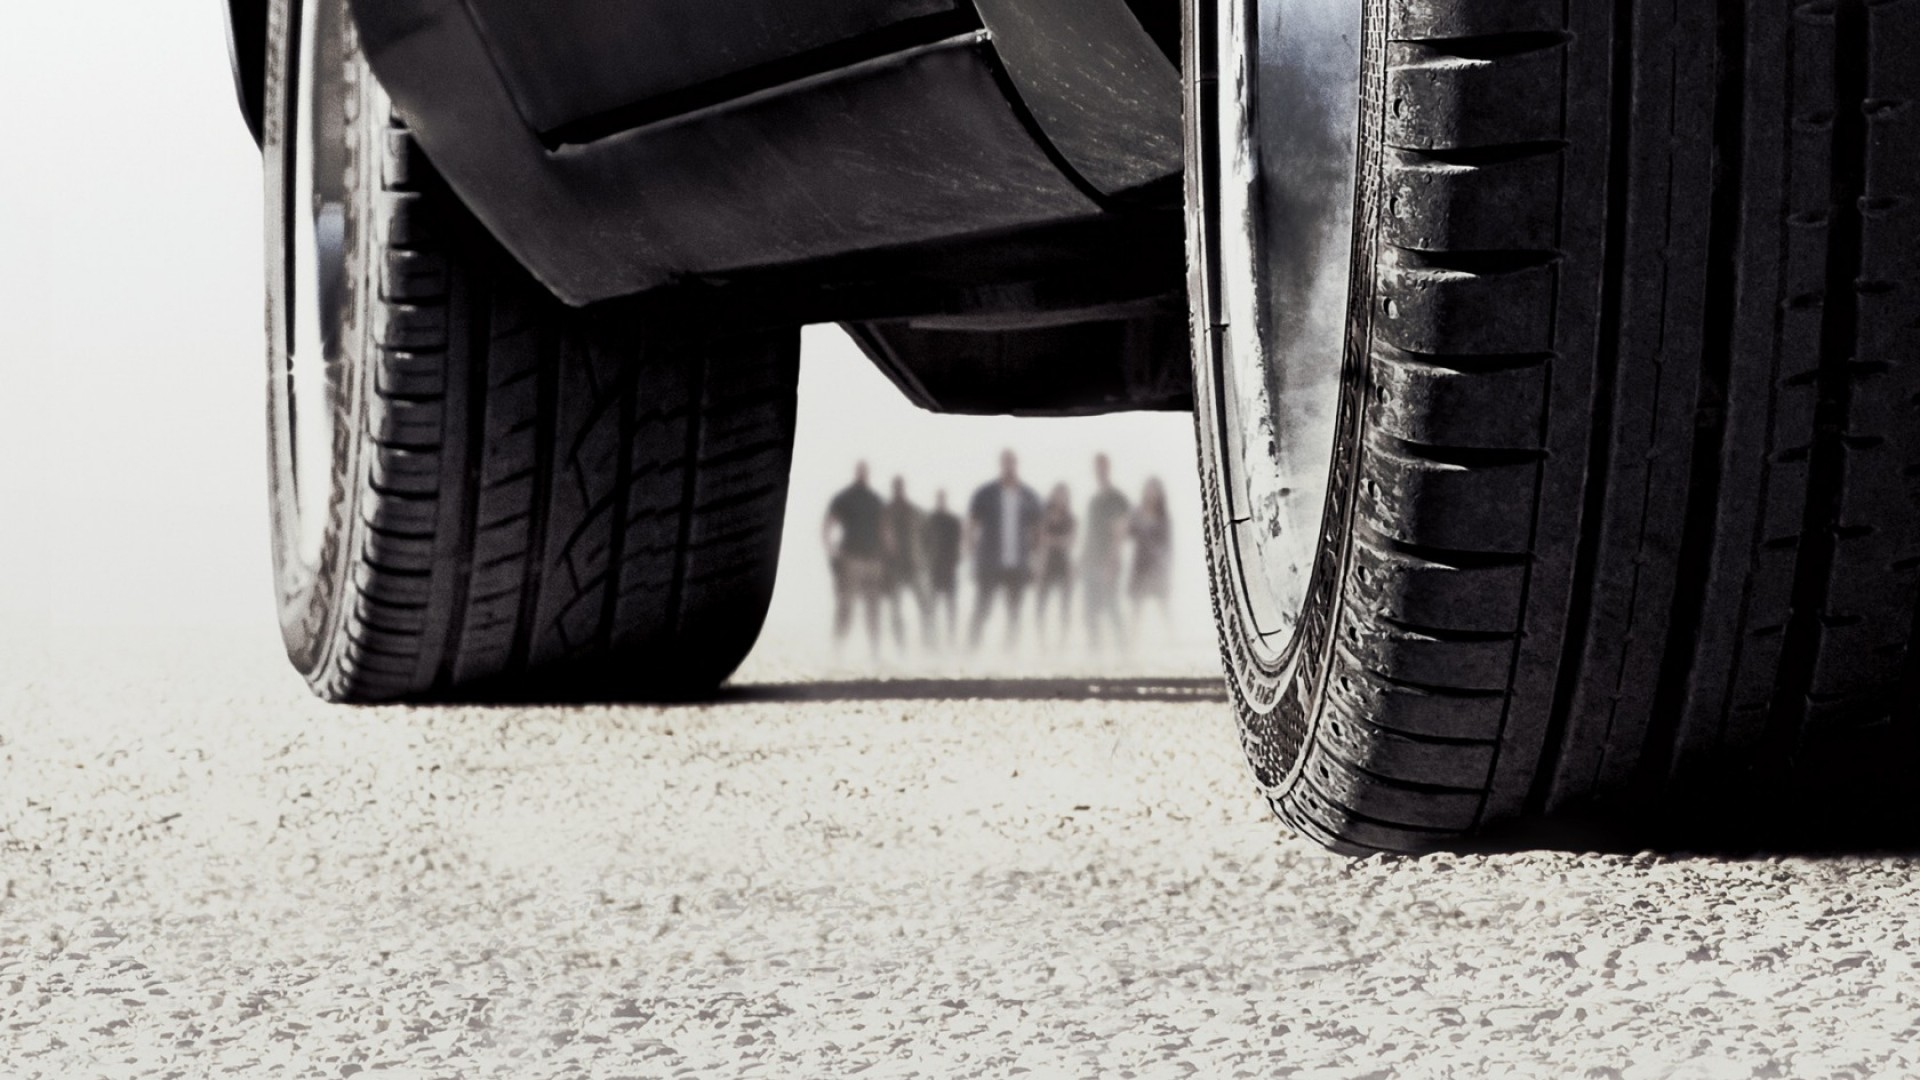 1920x1080 Preview wallpaper fast and furious, furious 7, car, tire